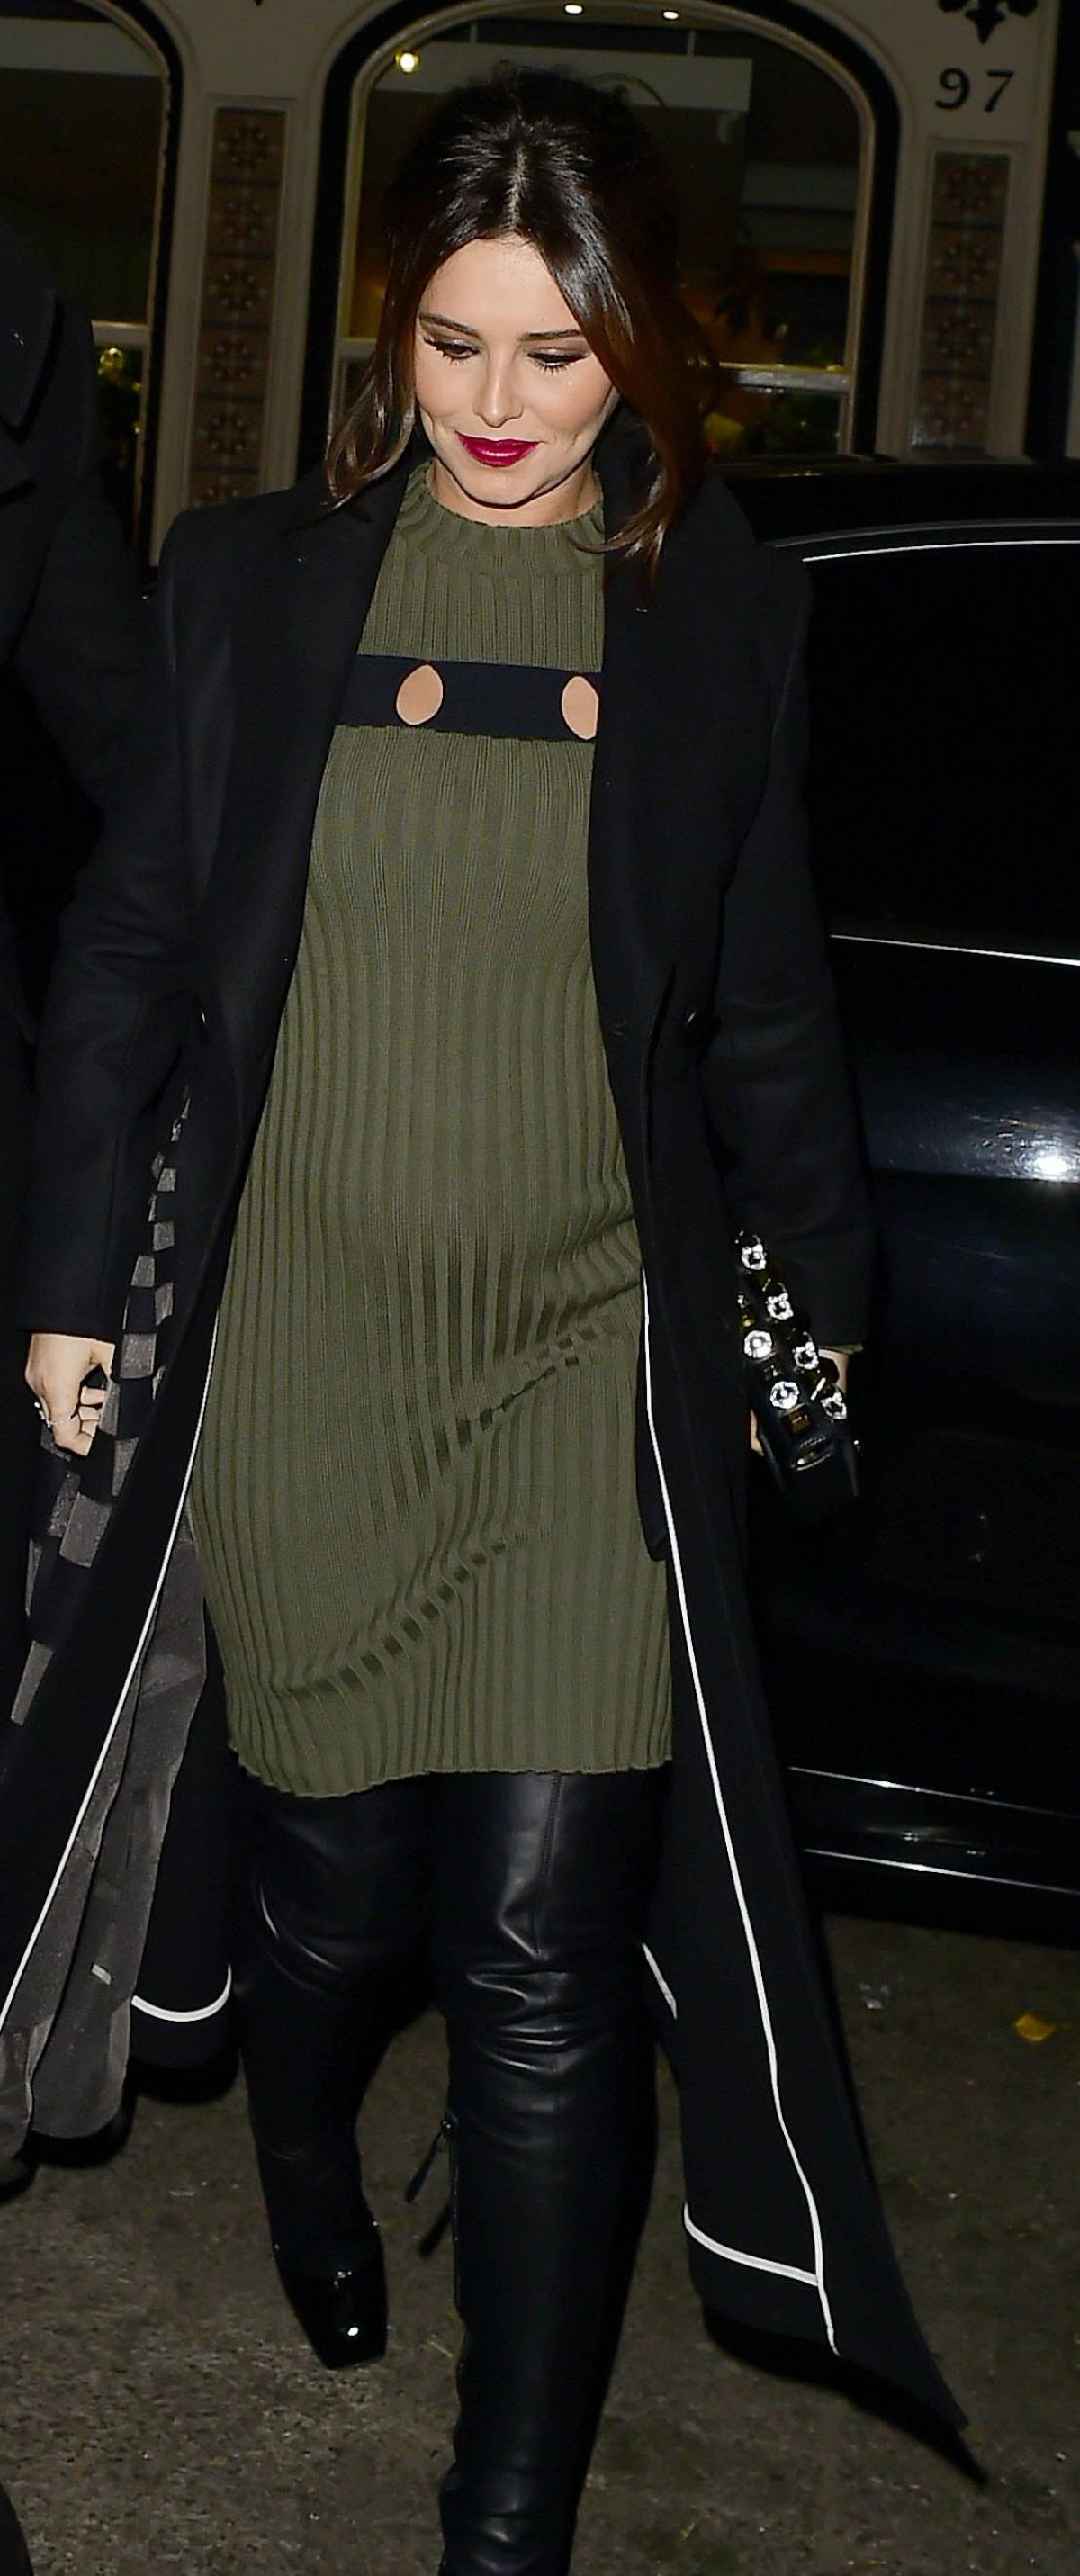 Cheryl Cole At Preggers Belly In Green Knitted Dress In